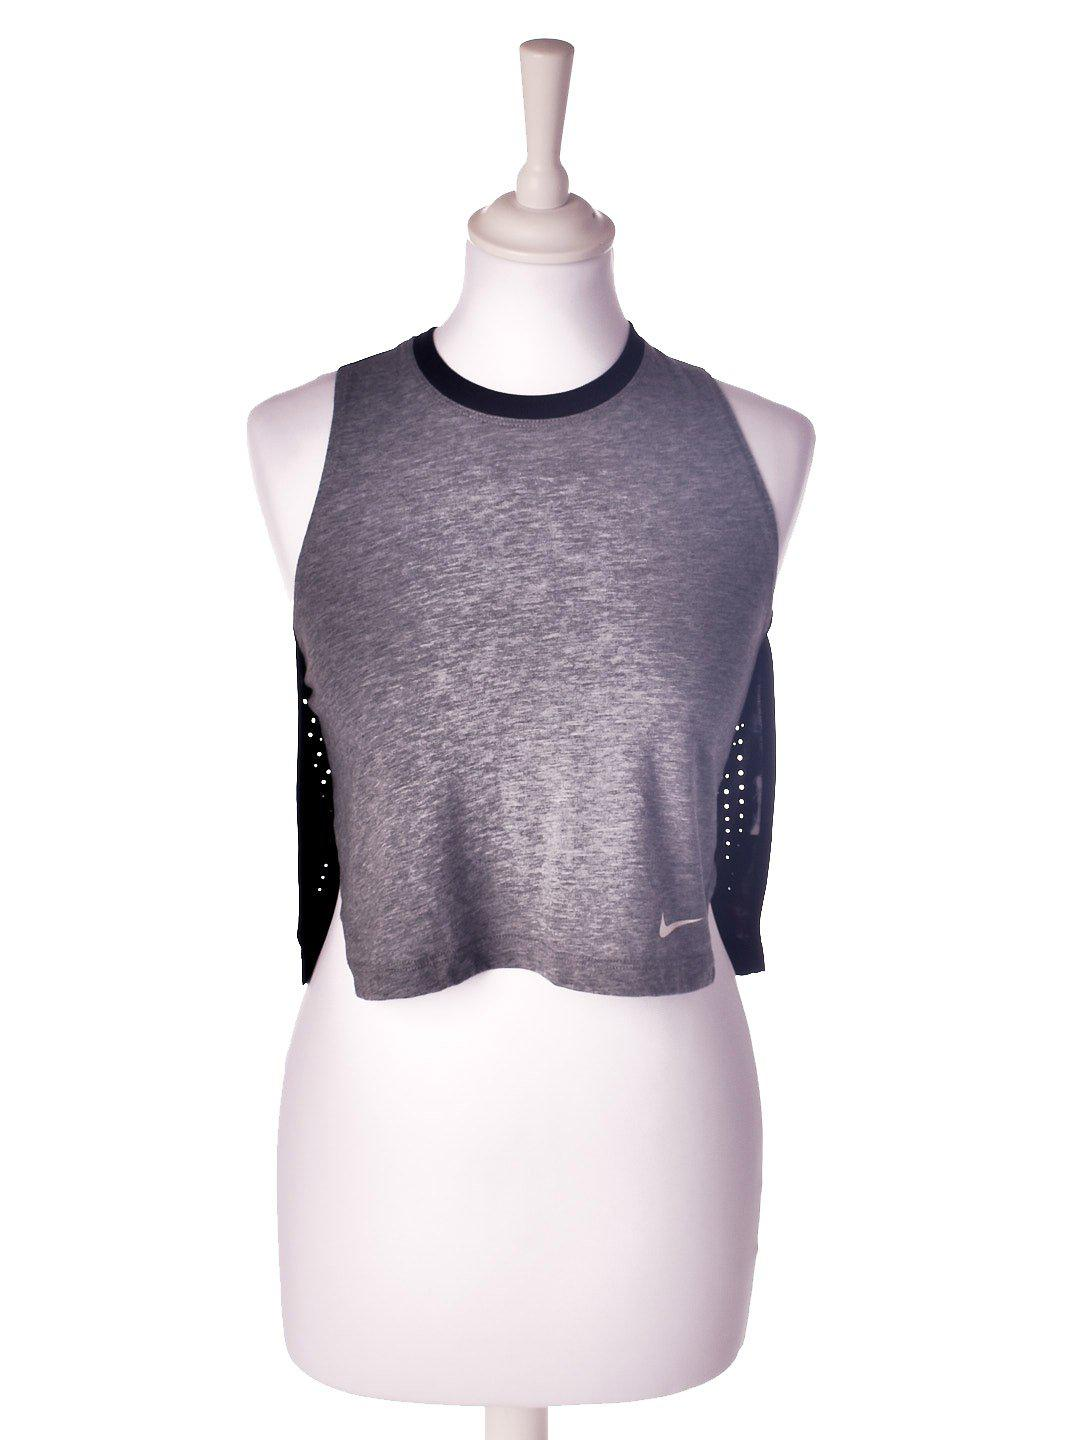 Cropped Sports Top fra NIKE